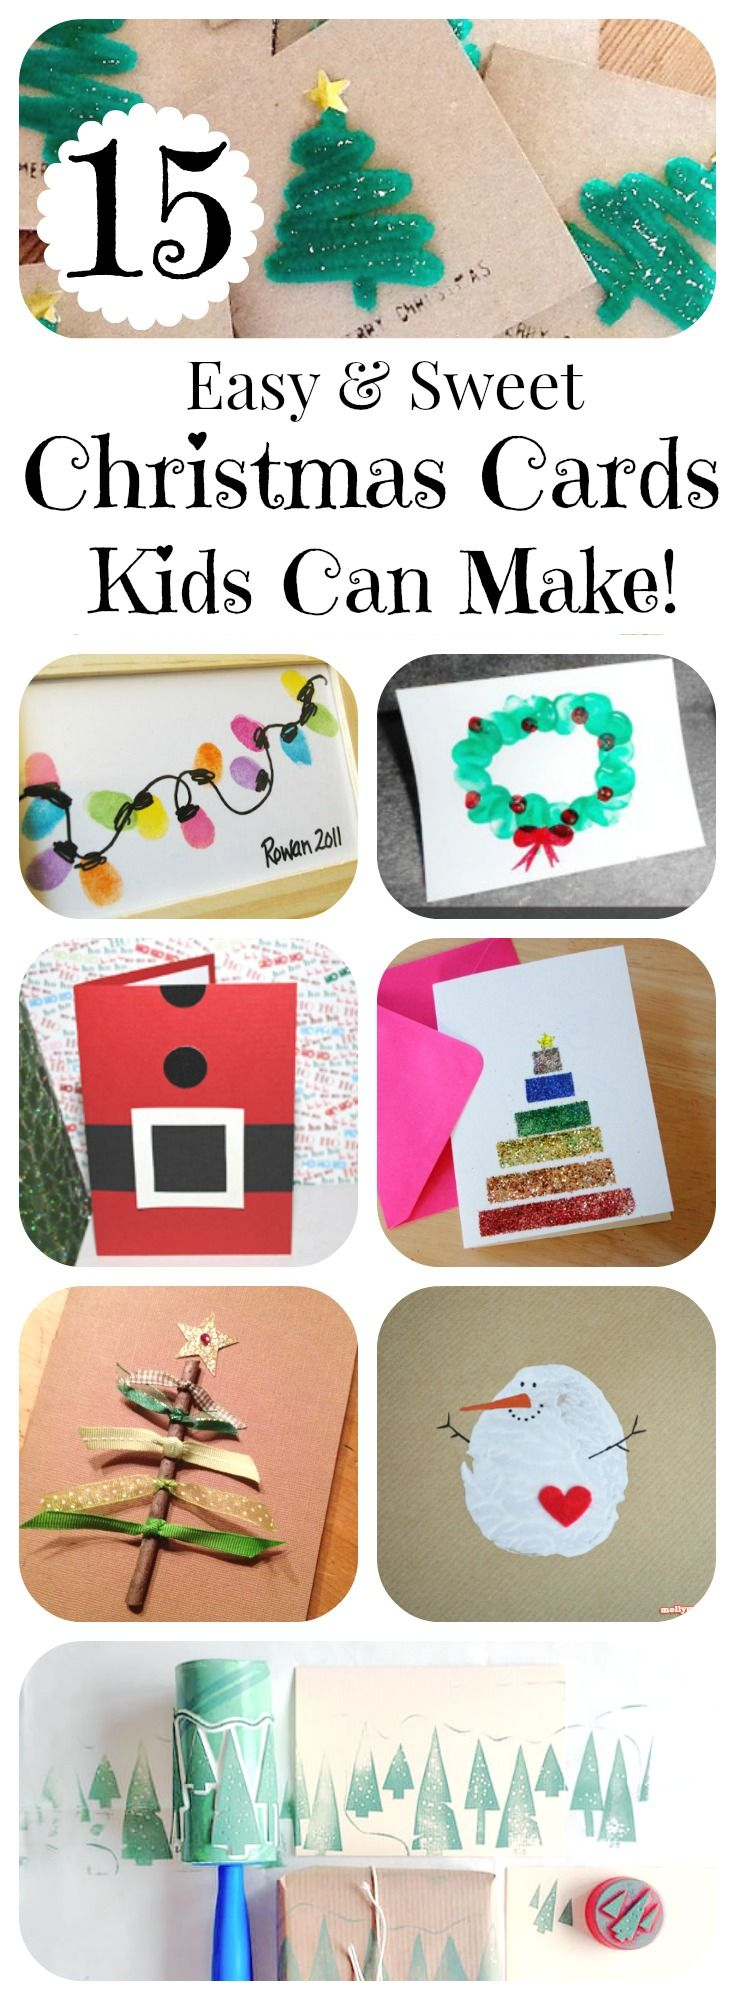 15 Christmas Cards Kids Can Make! || Letters from Santa Holiday Blog! Perfect Christmas Craft for the classroom too!